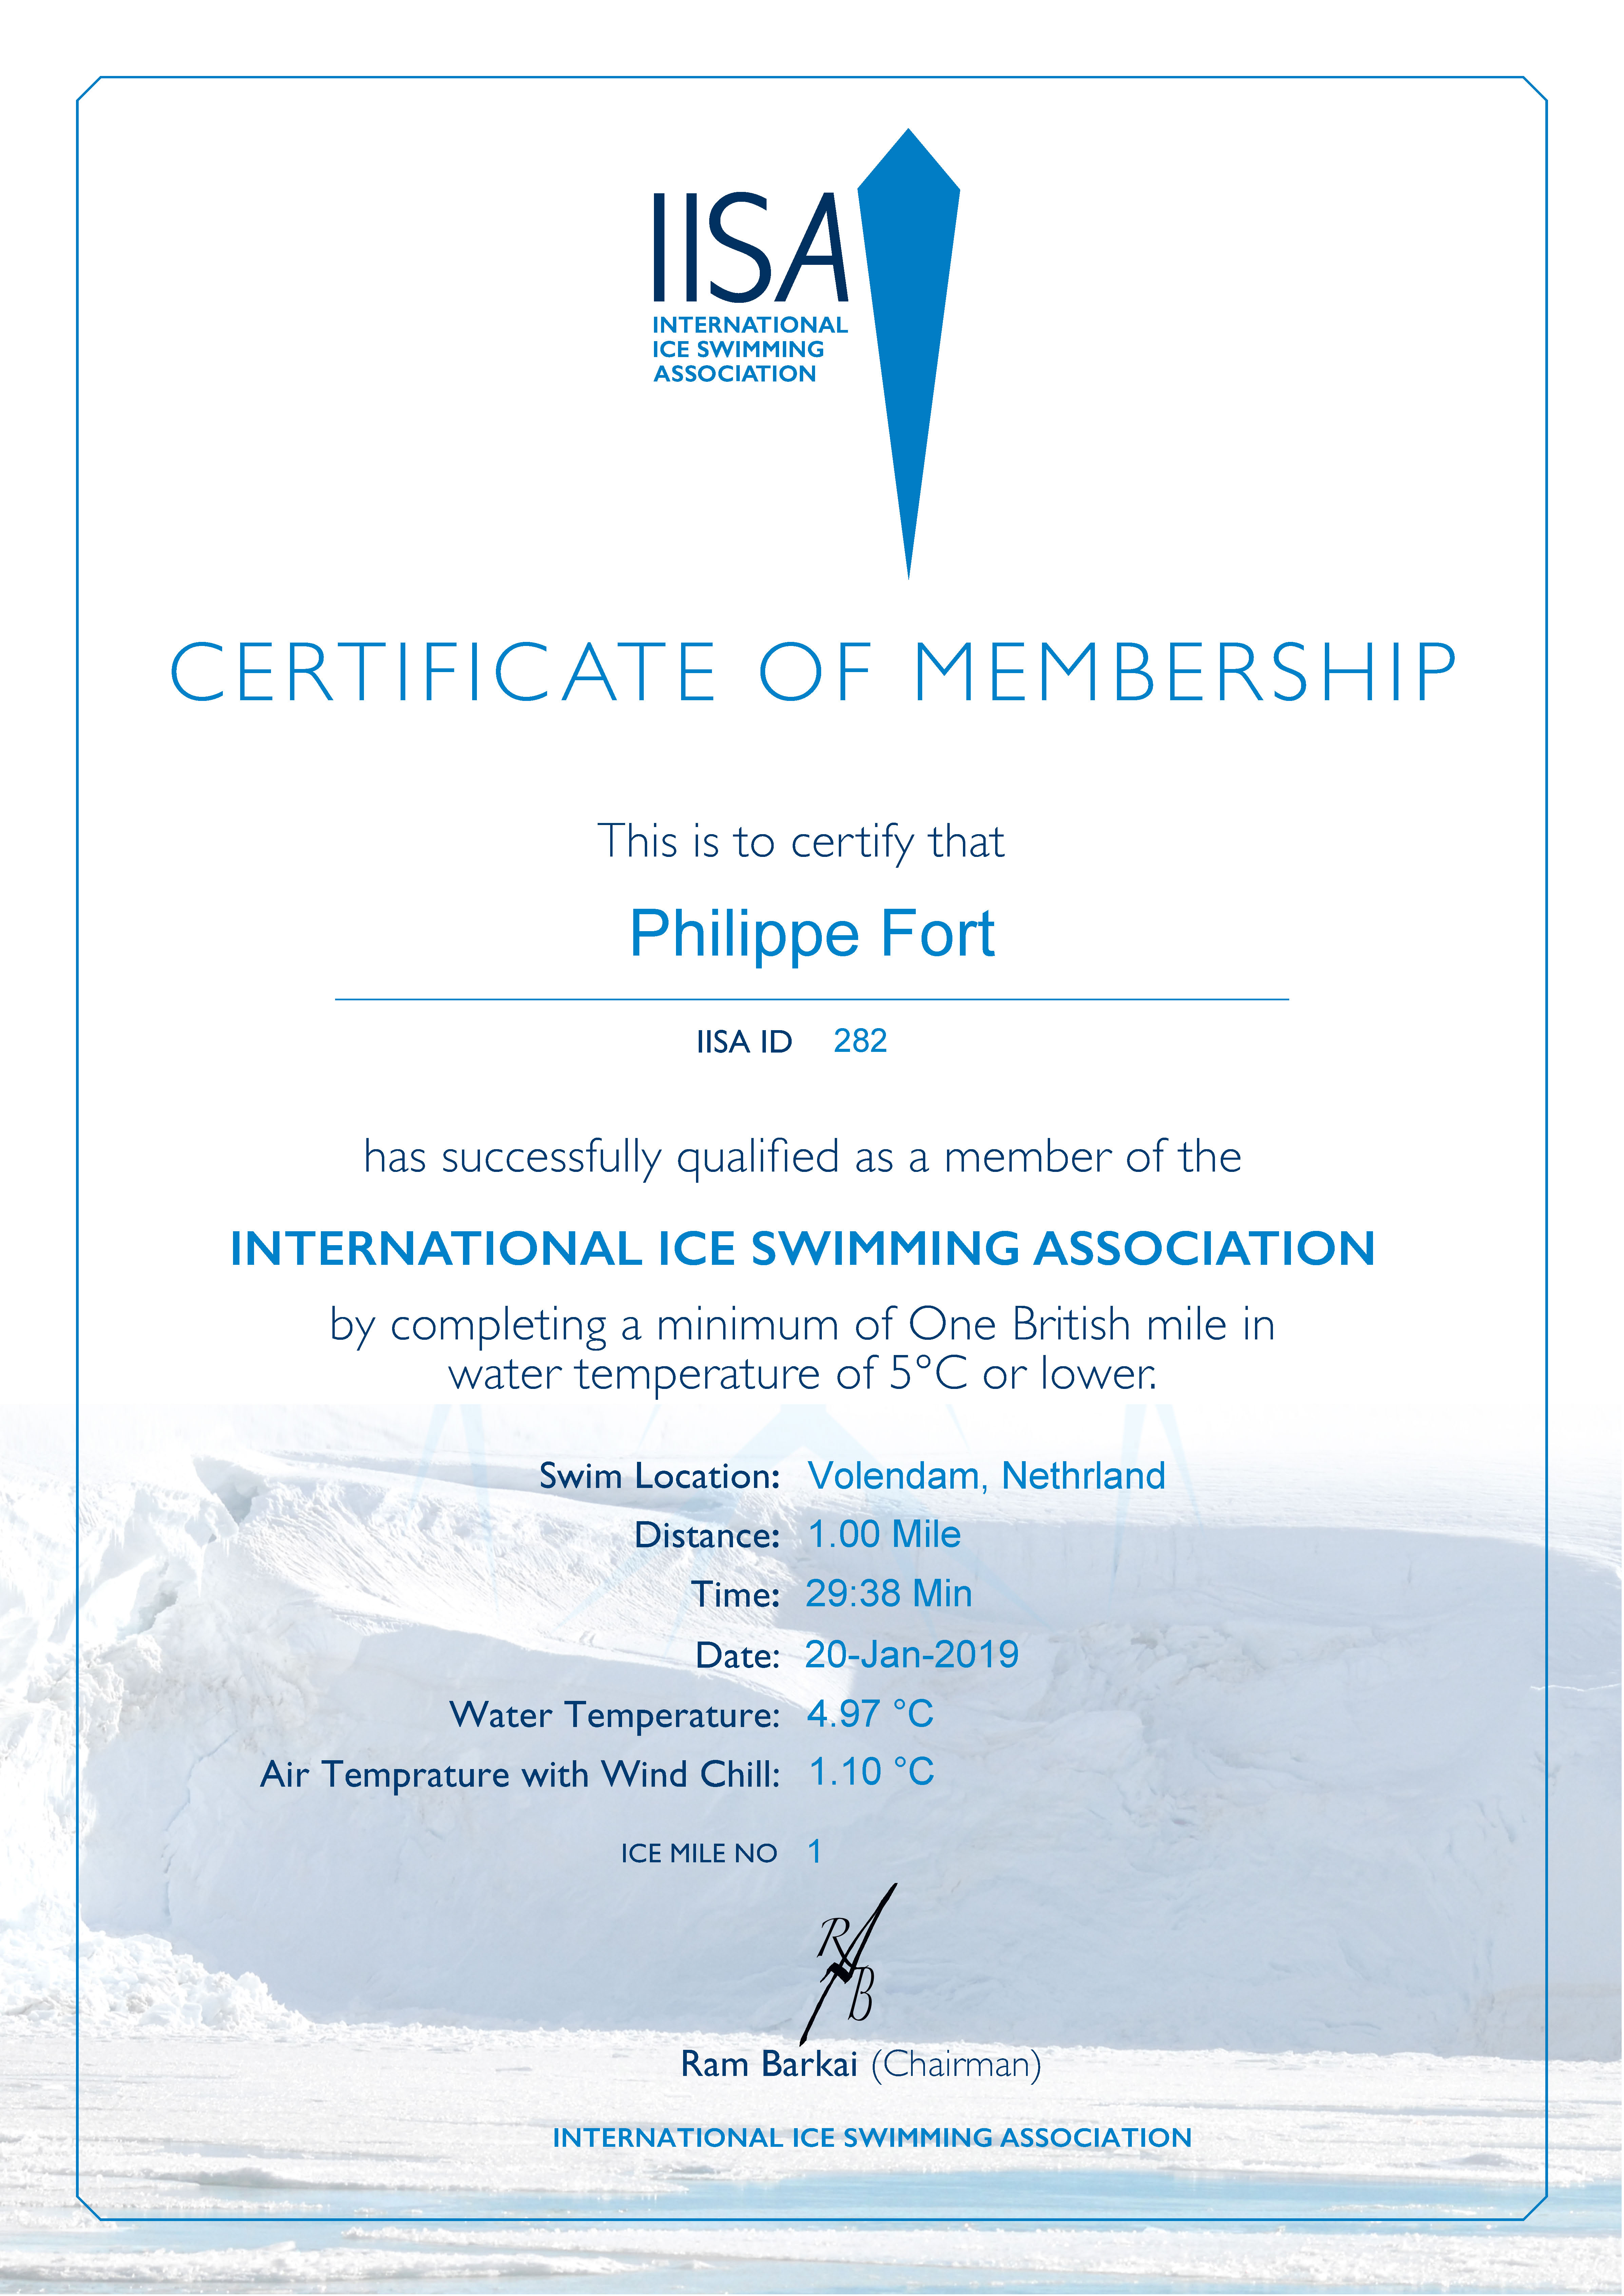 Ice Mile Certificate - Philippe Fort